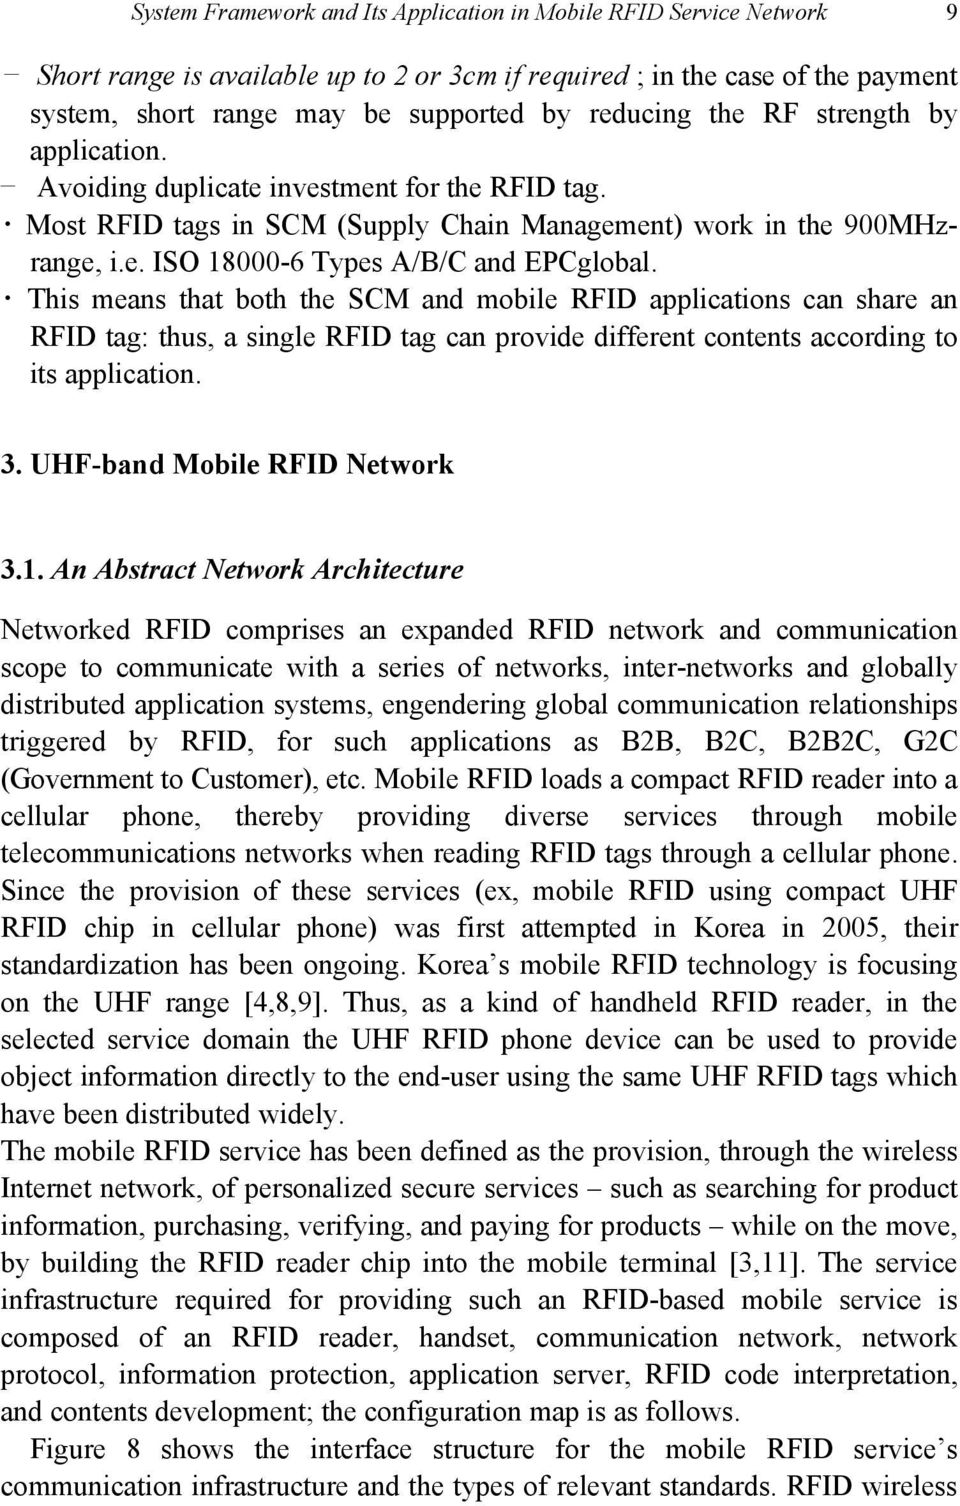 This means that both the SCM and mobile RFID applications can share an RFID tag: thus, a single RFID tag can provide different contents according to its application. 3. UHF-band Mobile RFID Network 3.